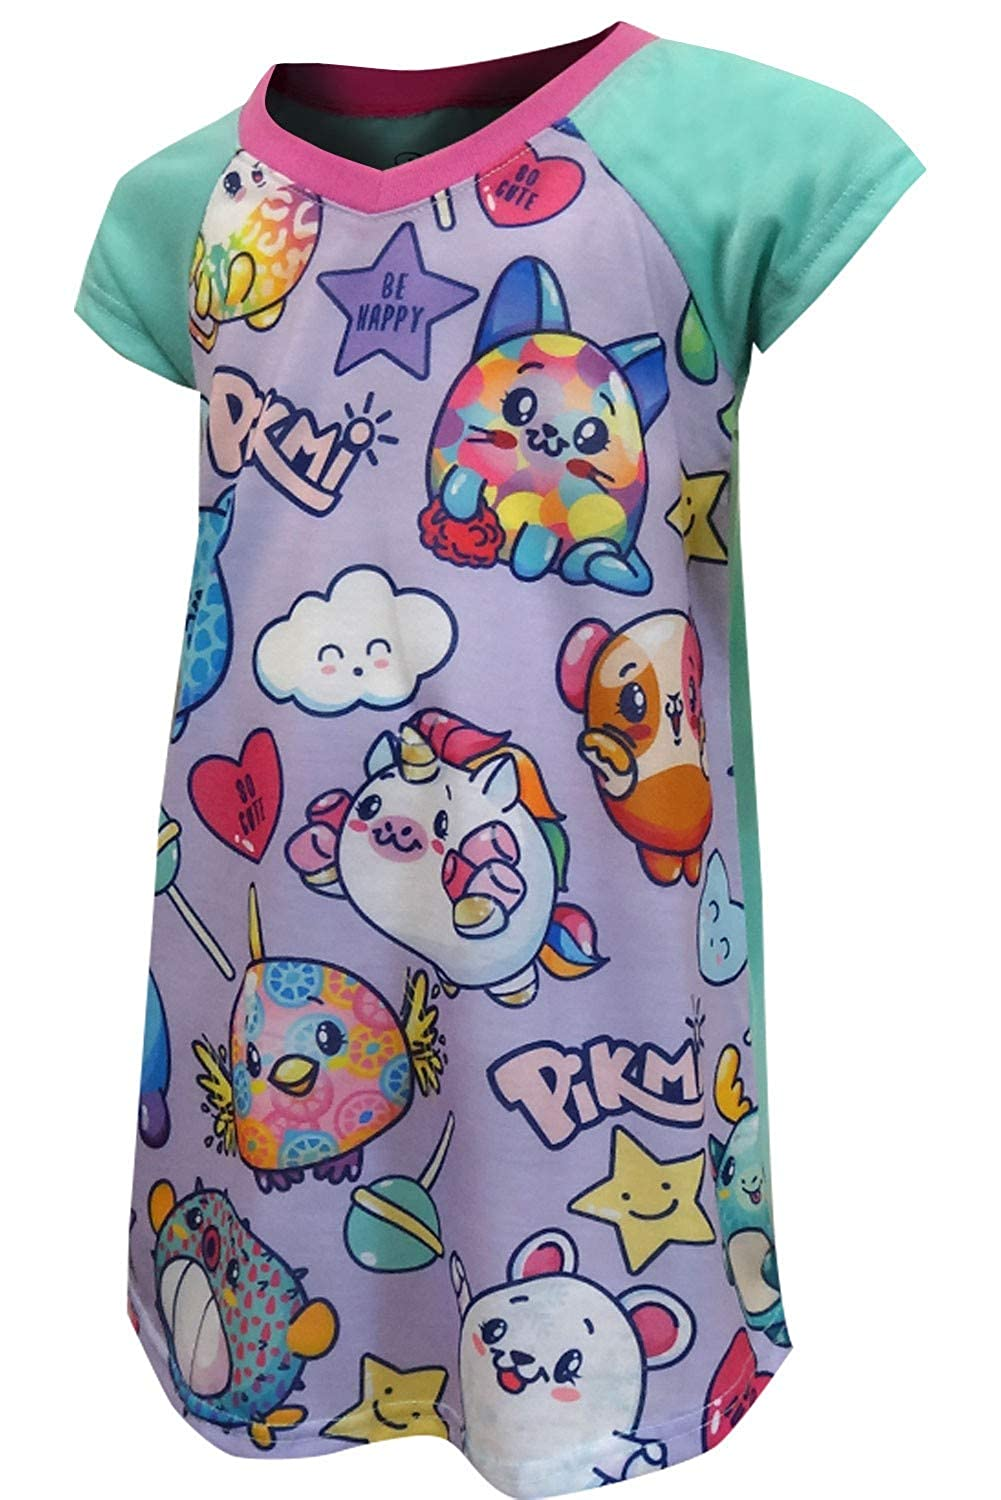 AME Sleepwear Girls Pikmi Pops Surprise Nightgown Lavender